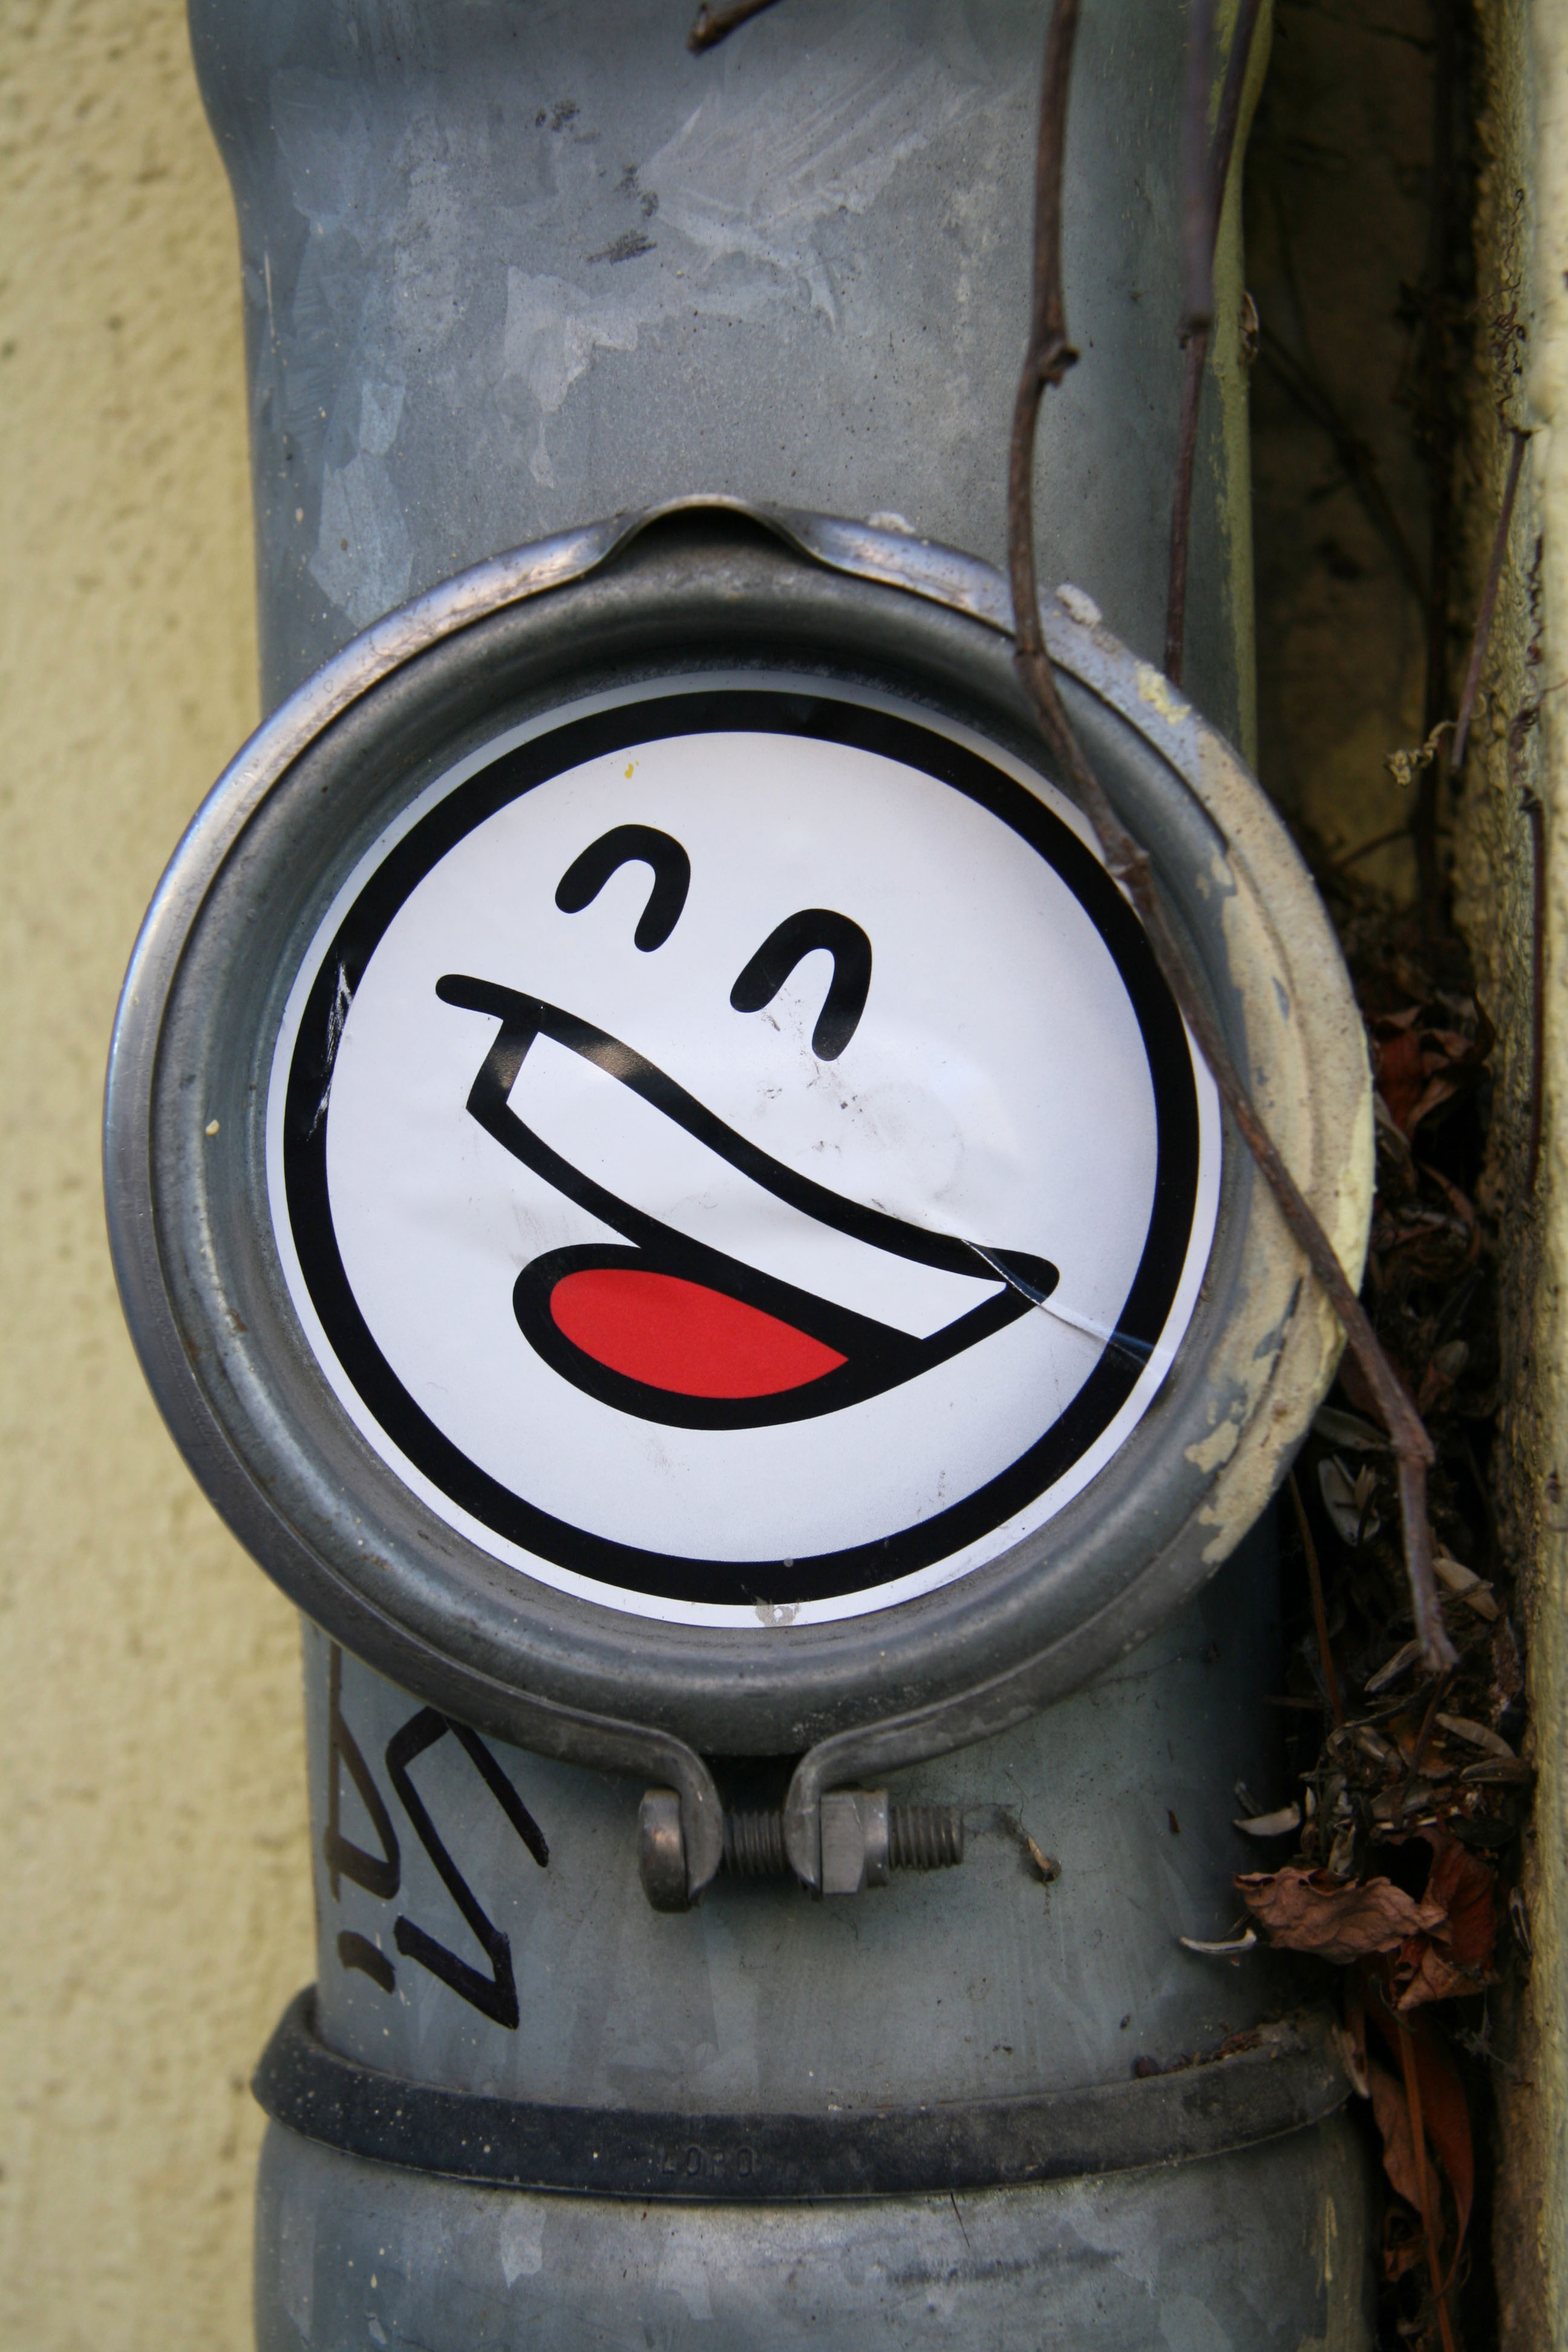 Smiley Sticker: Street Art by Mein Lieber Prost (often shortened to Prost) in Berlin